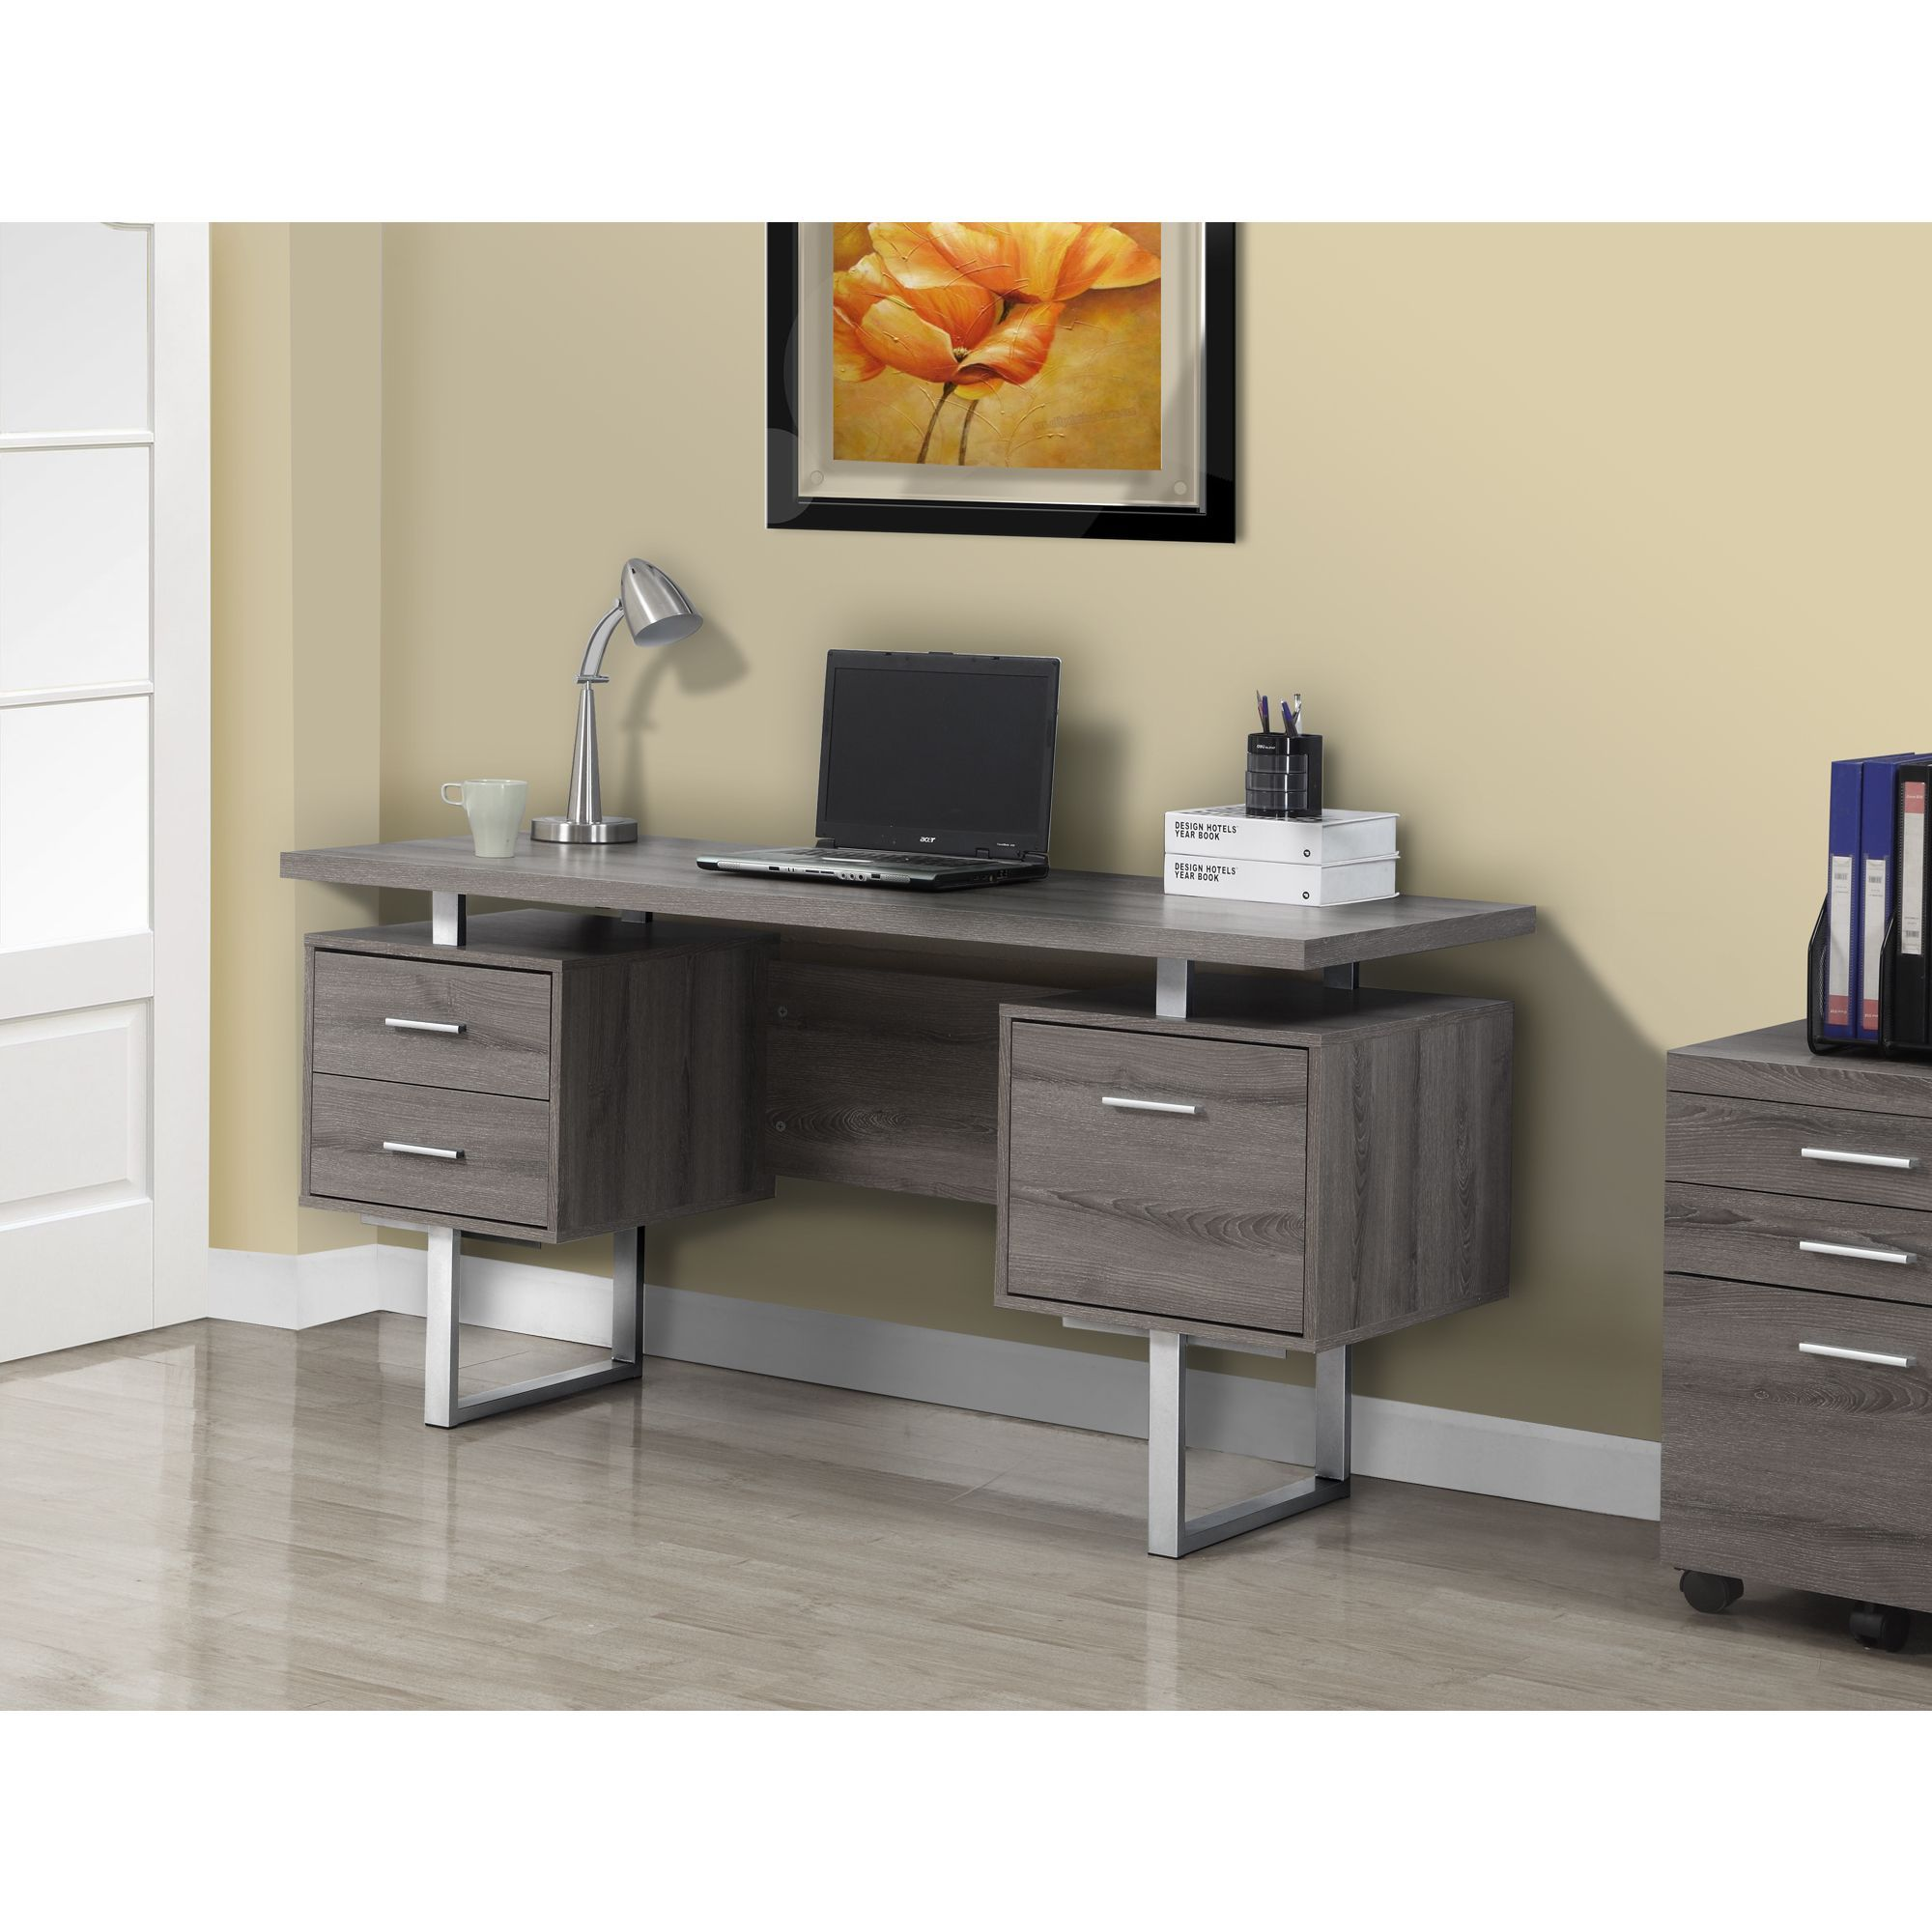 Choisir Un Ordinateur De Bureau Professionnel This Dark Taupe Desk Has The Look Of Reclaimed Wood